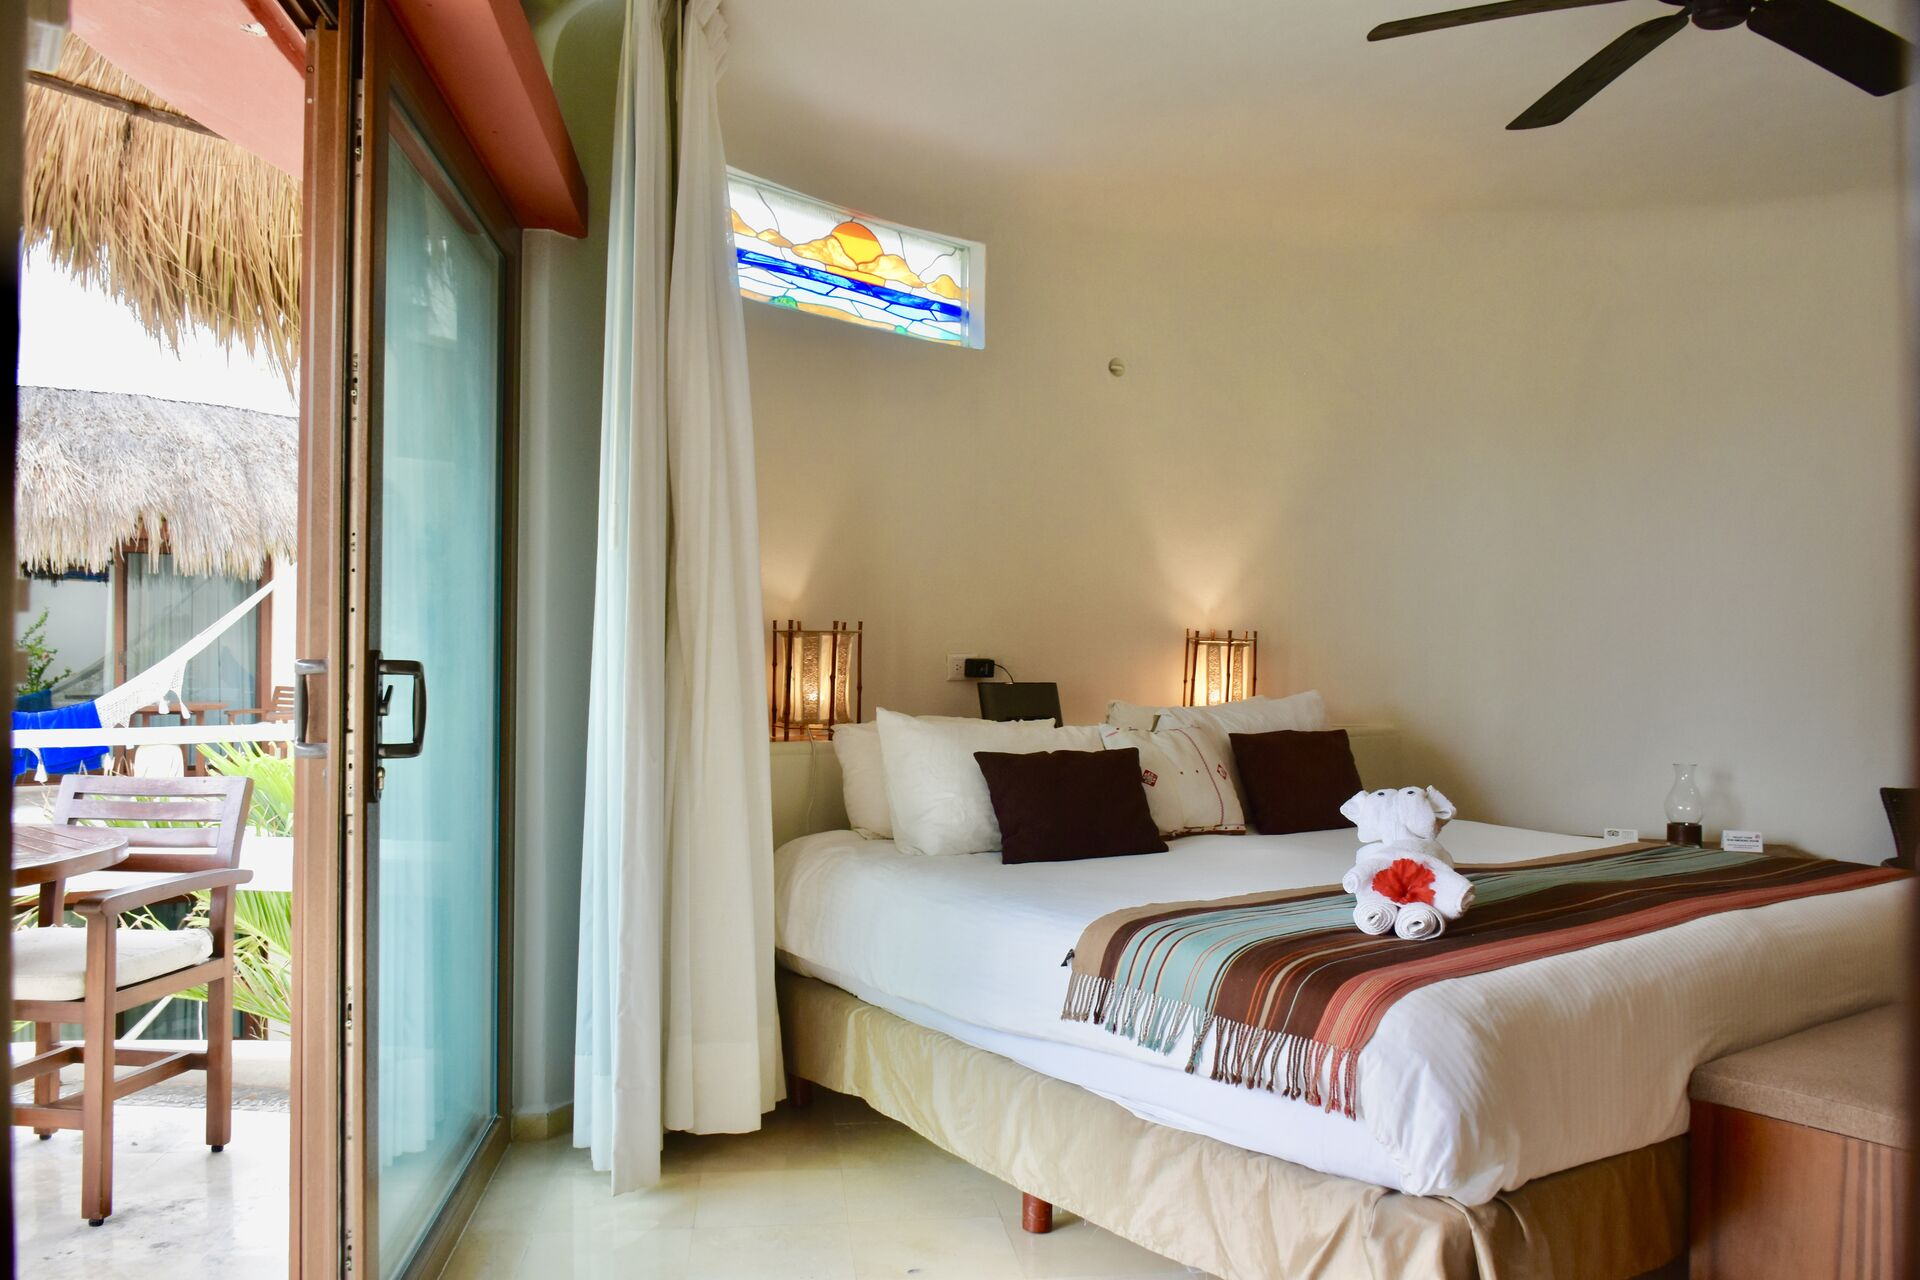 Fully furnished ocean view suite with king size bed and kitchenette.